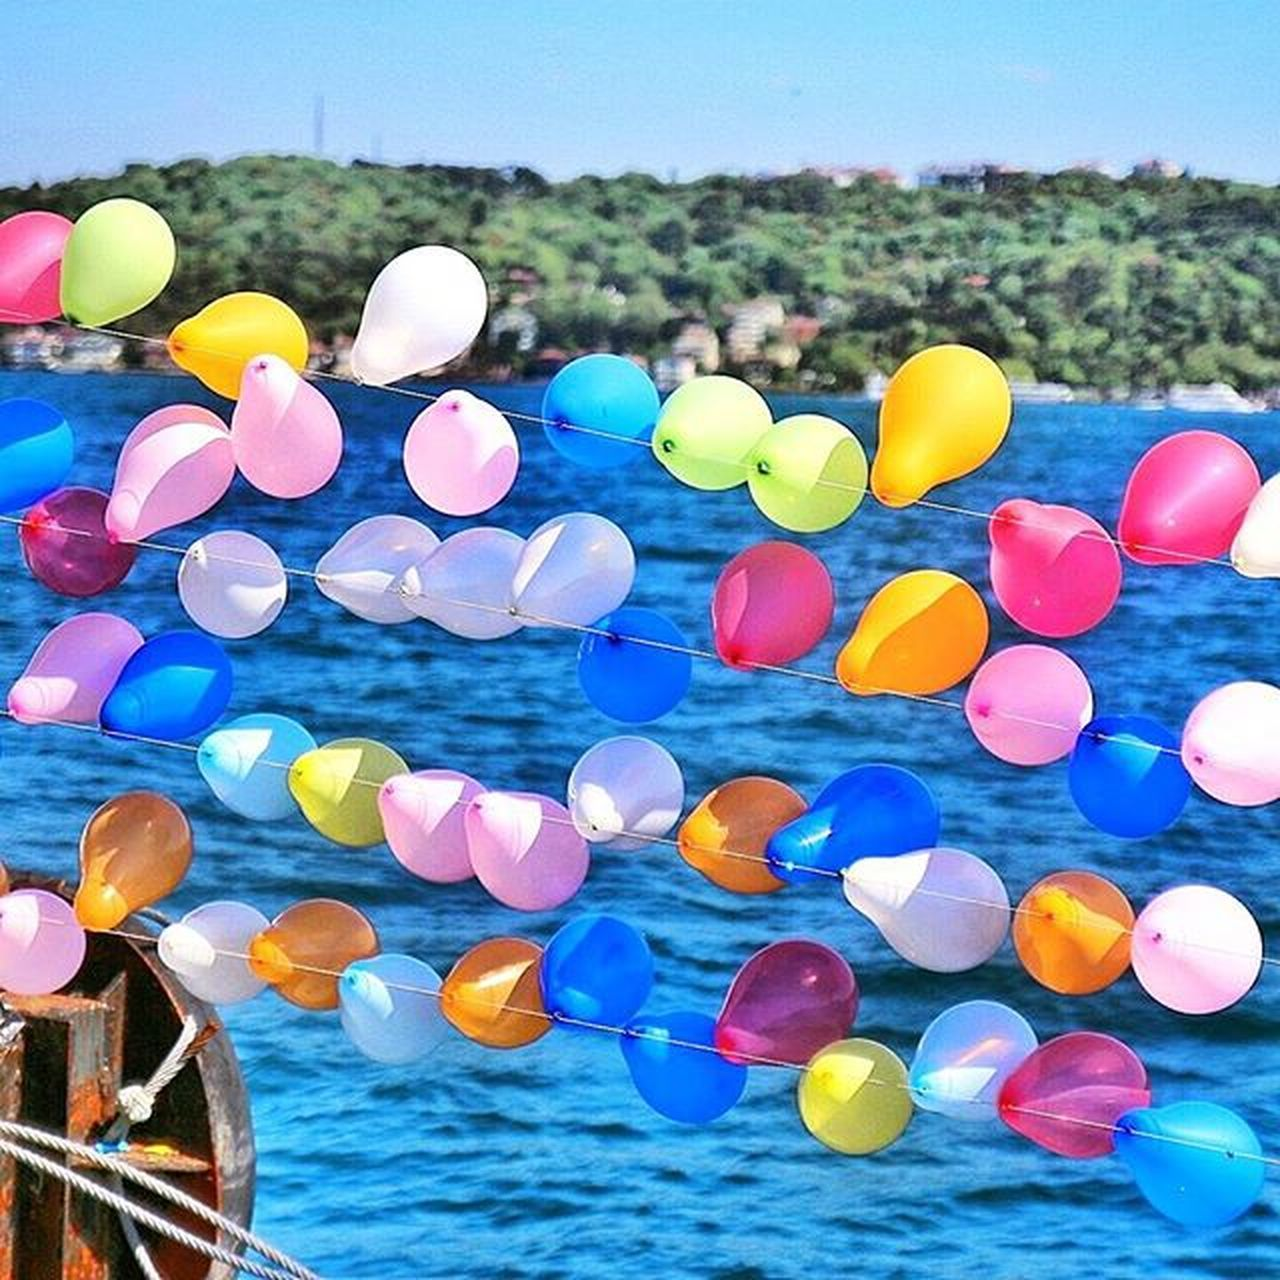 multi colored, outdoors, balloon, large group of objects, sea, day, blue, water, no people, celebration, nature, sky, close-up